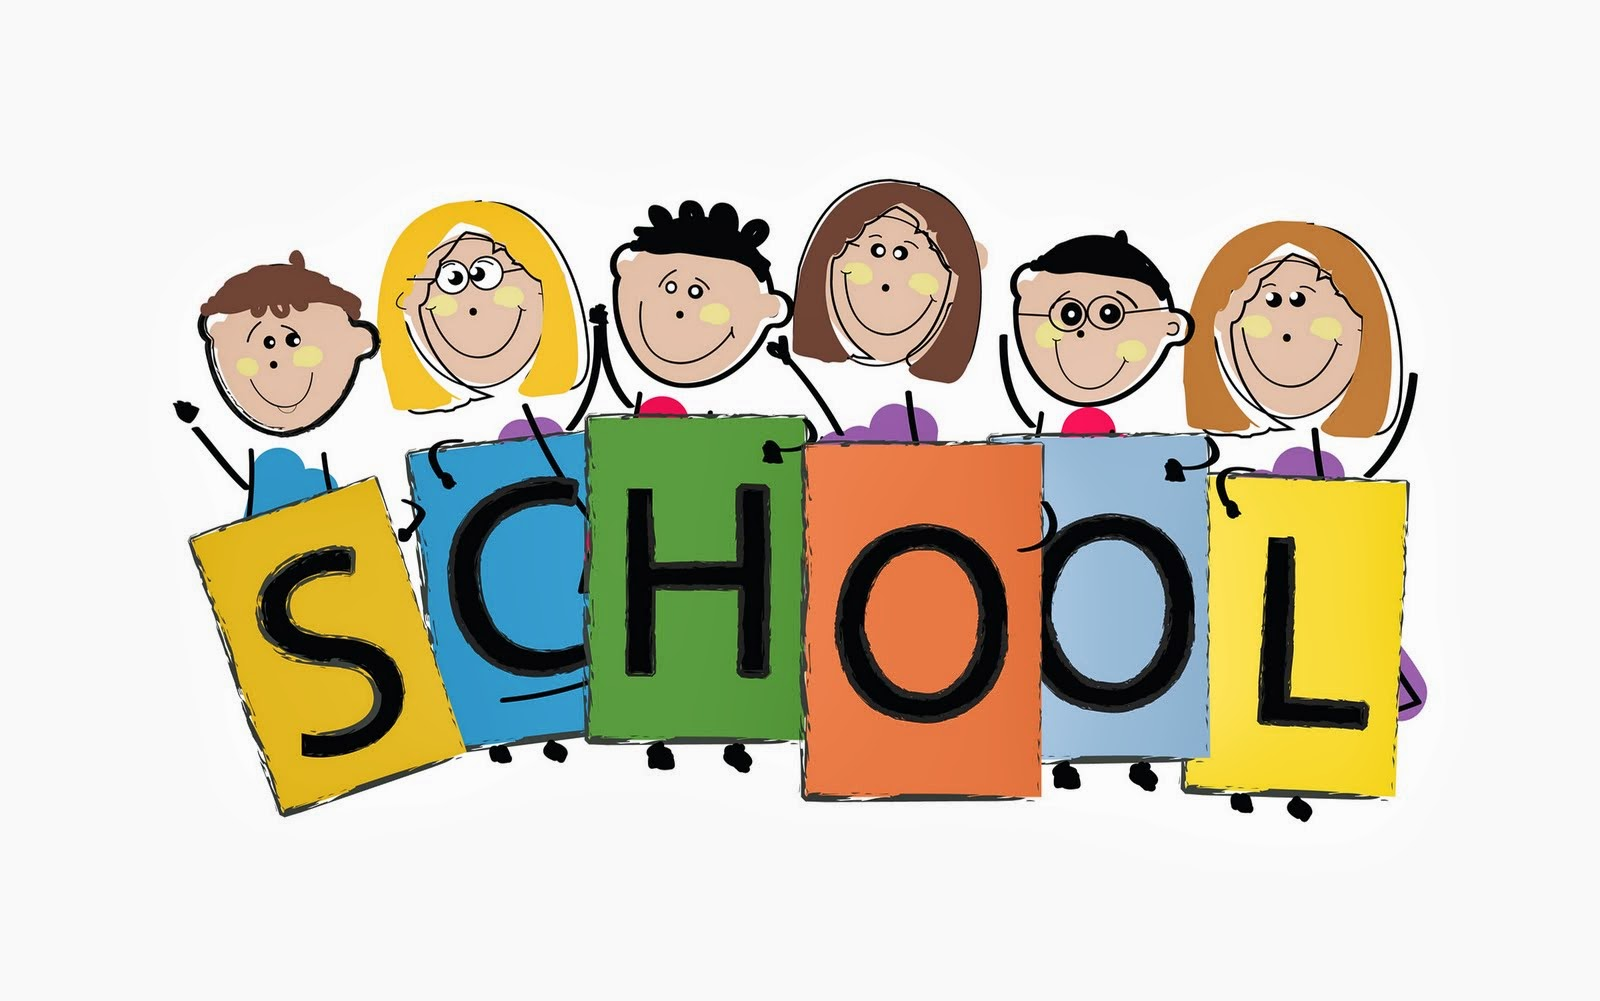 Schoolchildren clipart graphic black and white Free Assembly Cliparts, Download Free Clip Art, Free Clip Art on ... graphic black and white